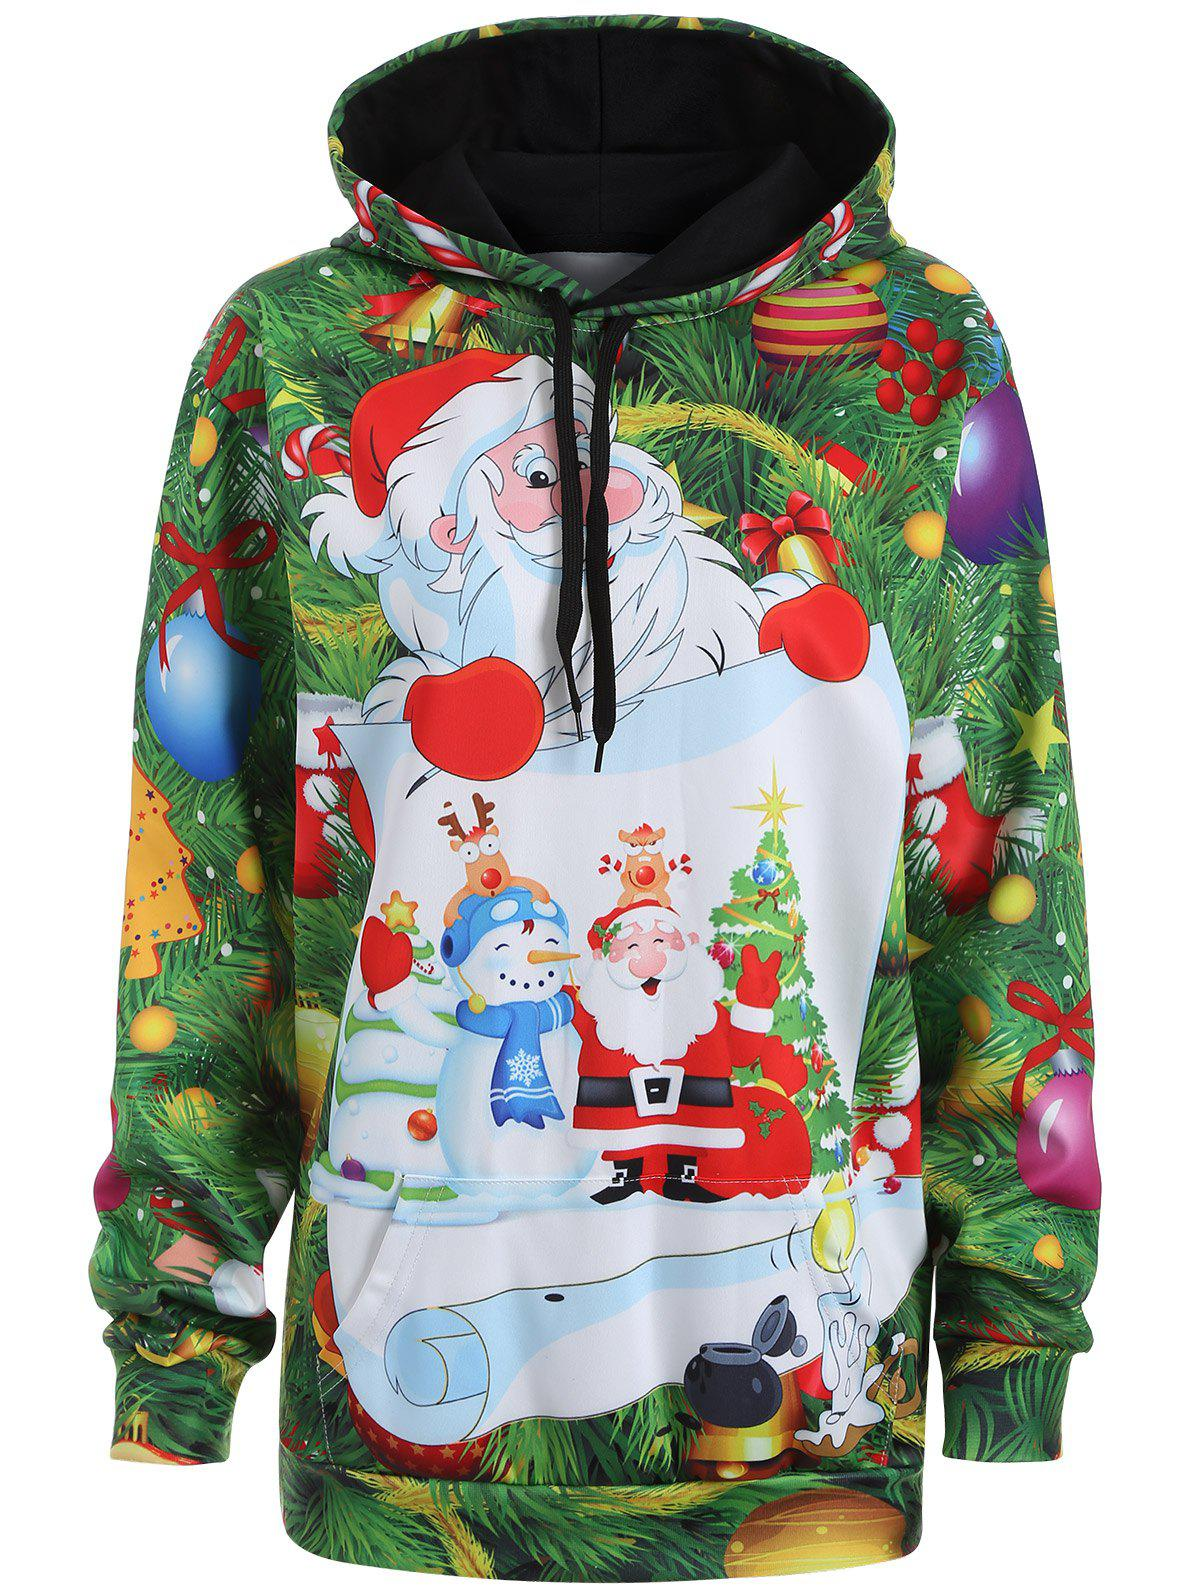 Plus Size Santa Claus Christmas Drawstring Patterned HoodiesWOMEN<br><br>Size: 3XL; Color: GRASS GREEN; Material: Polyester; Shirt Length: Long; Sleeve Length: Full; Style: Casual; Pattern Style: Figure; Season: Fall,Spring; Weight: 0.570kg; Package Contents: 1 x Hoodie;